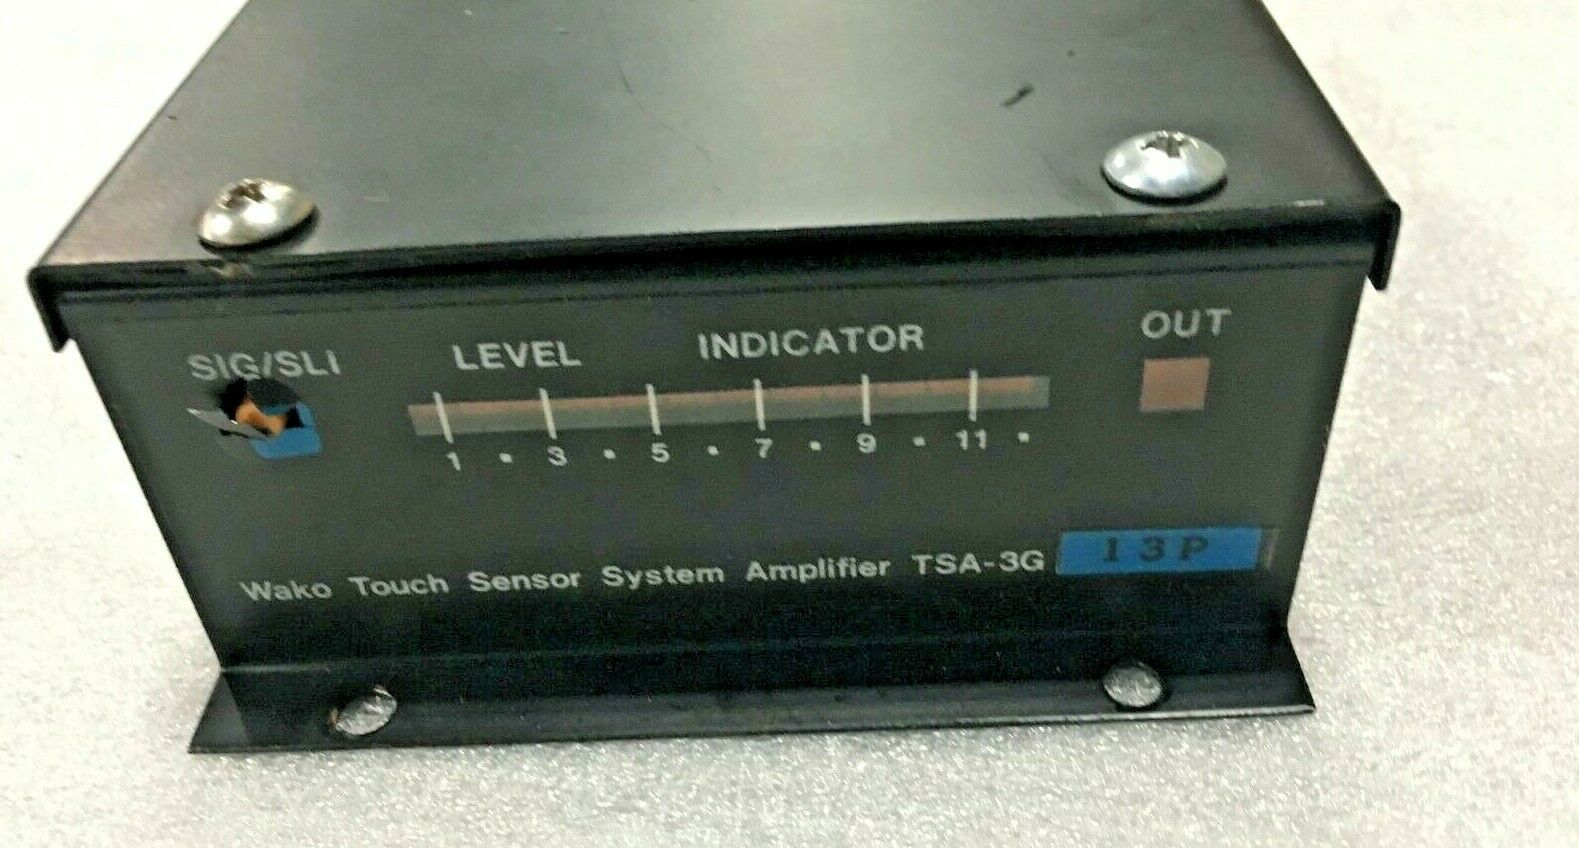 Wako Touch Sensor System, model: TSA-3G, 13P. Was working when removed from a Hitachi Seiki HC-400